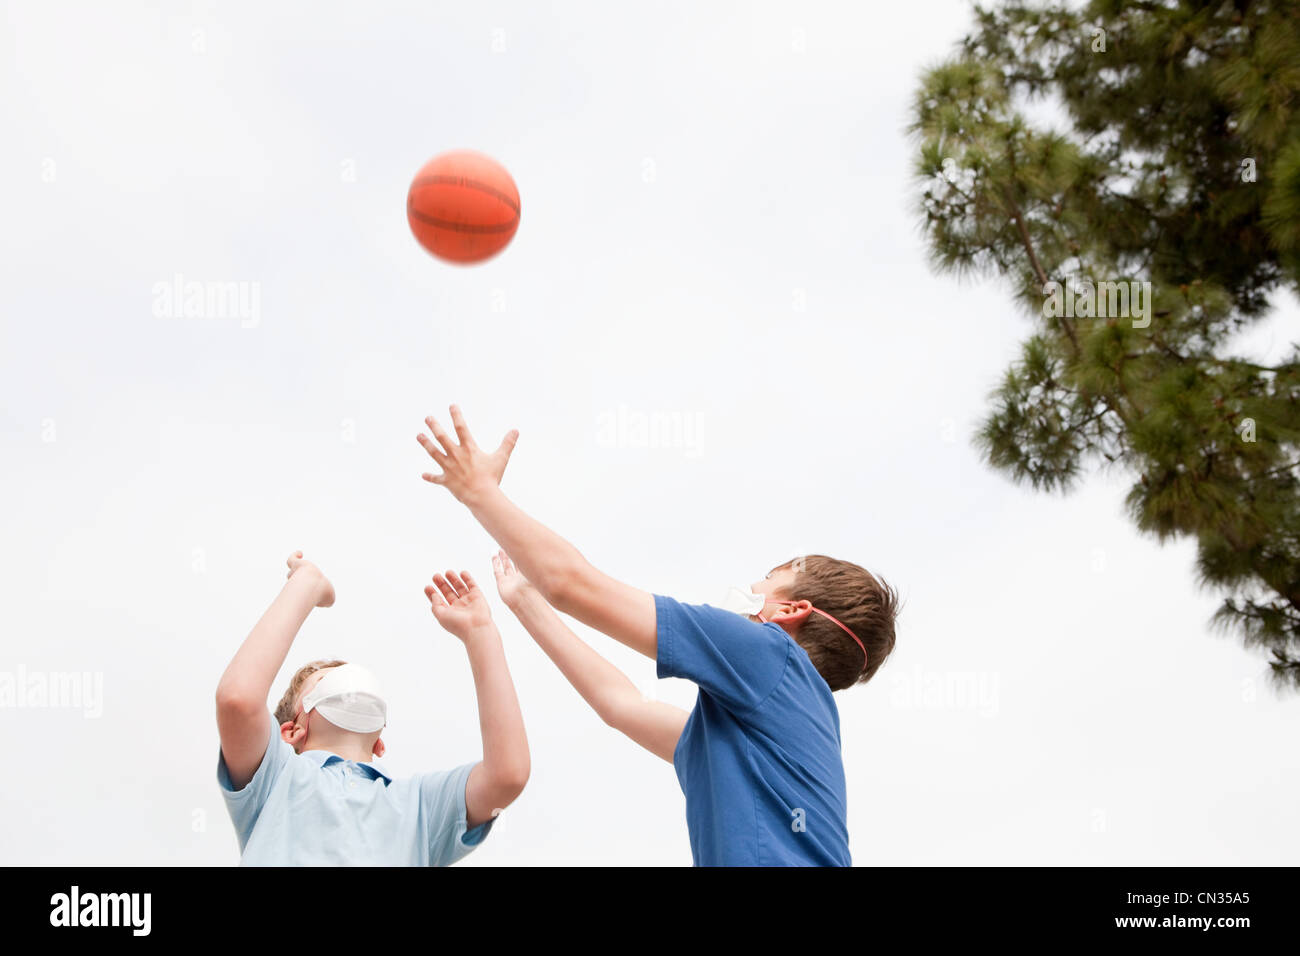 Two boys wearing dust masks playing basketball - Stock Image